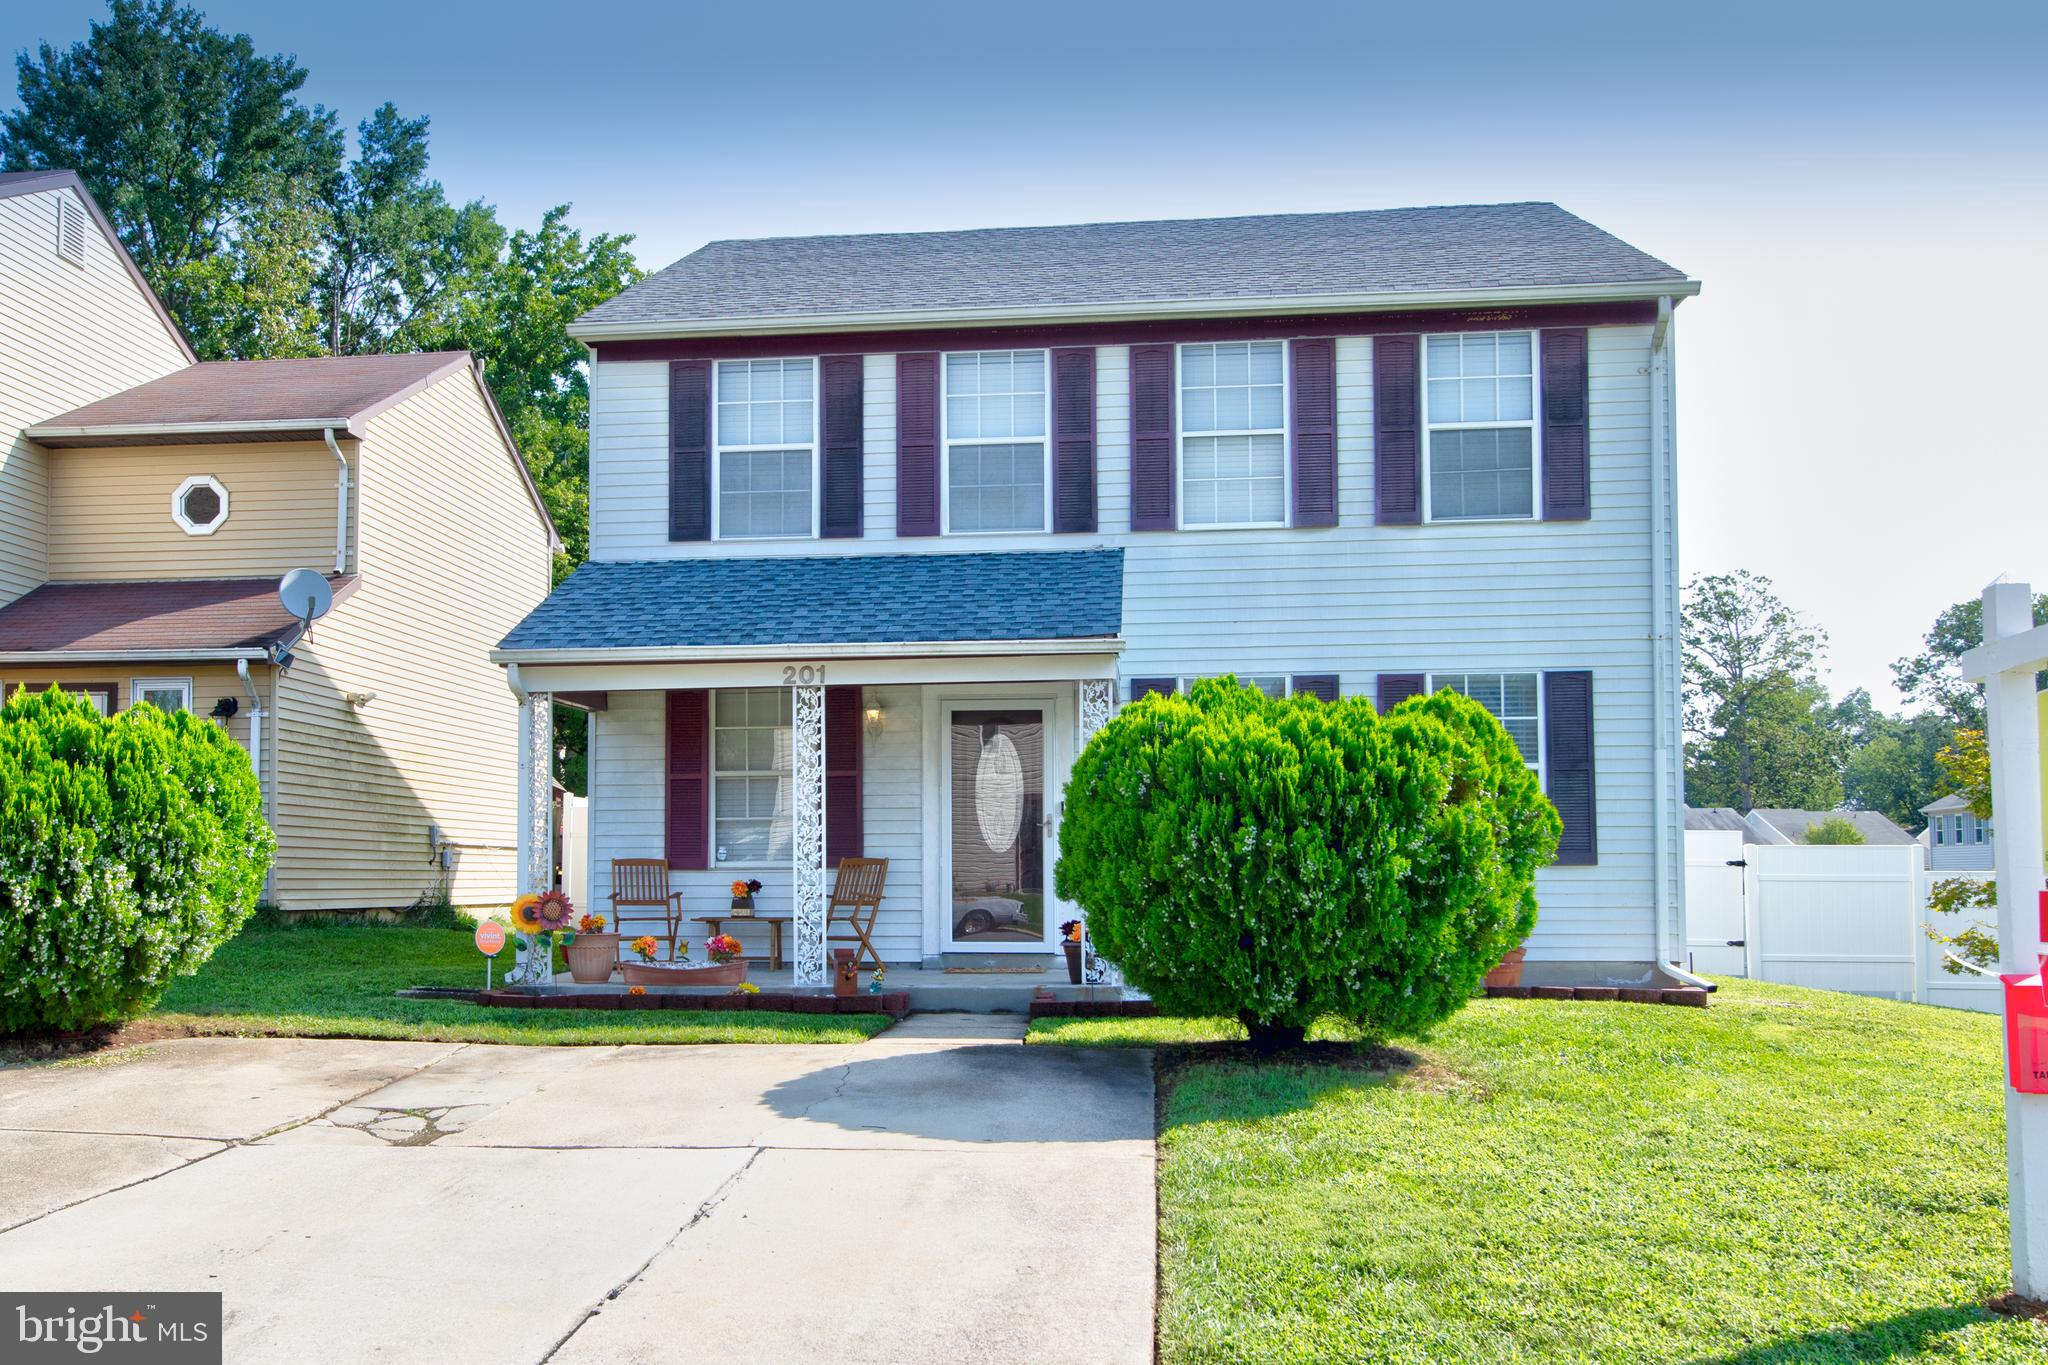 BEAUTIFULLY UPDATED SINGLE FAMILY HOME WITH OPEN CONCEPT AT THE PRICE OF A TOWNHOME! CORNER LOT WITH